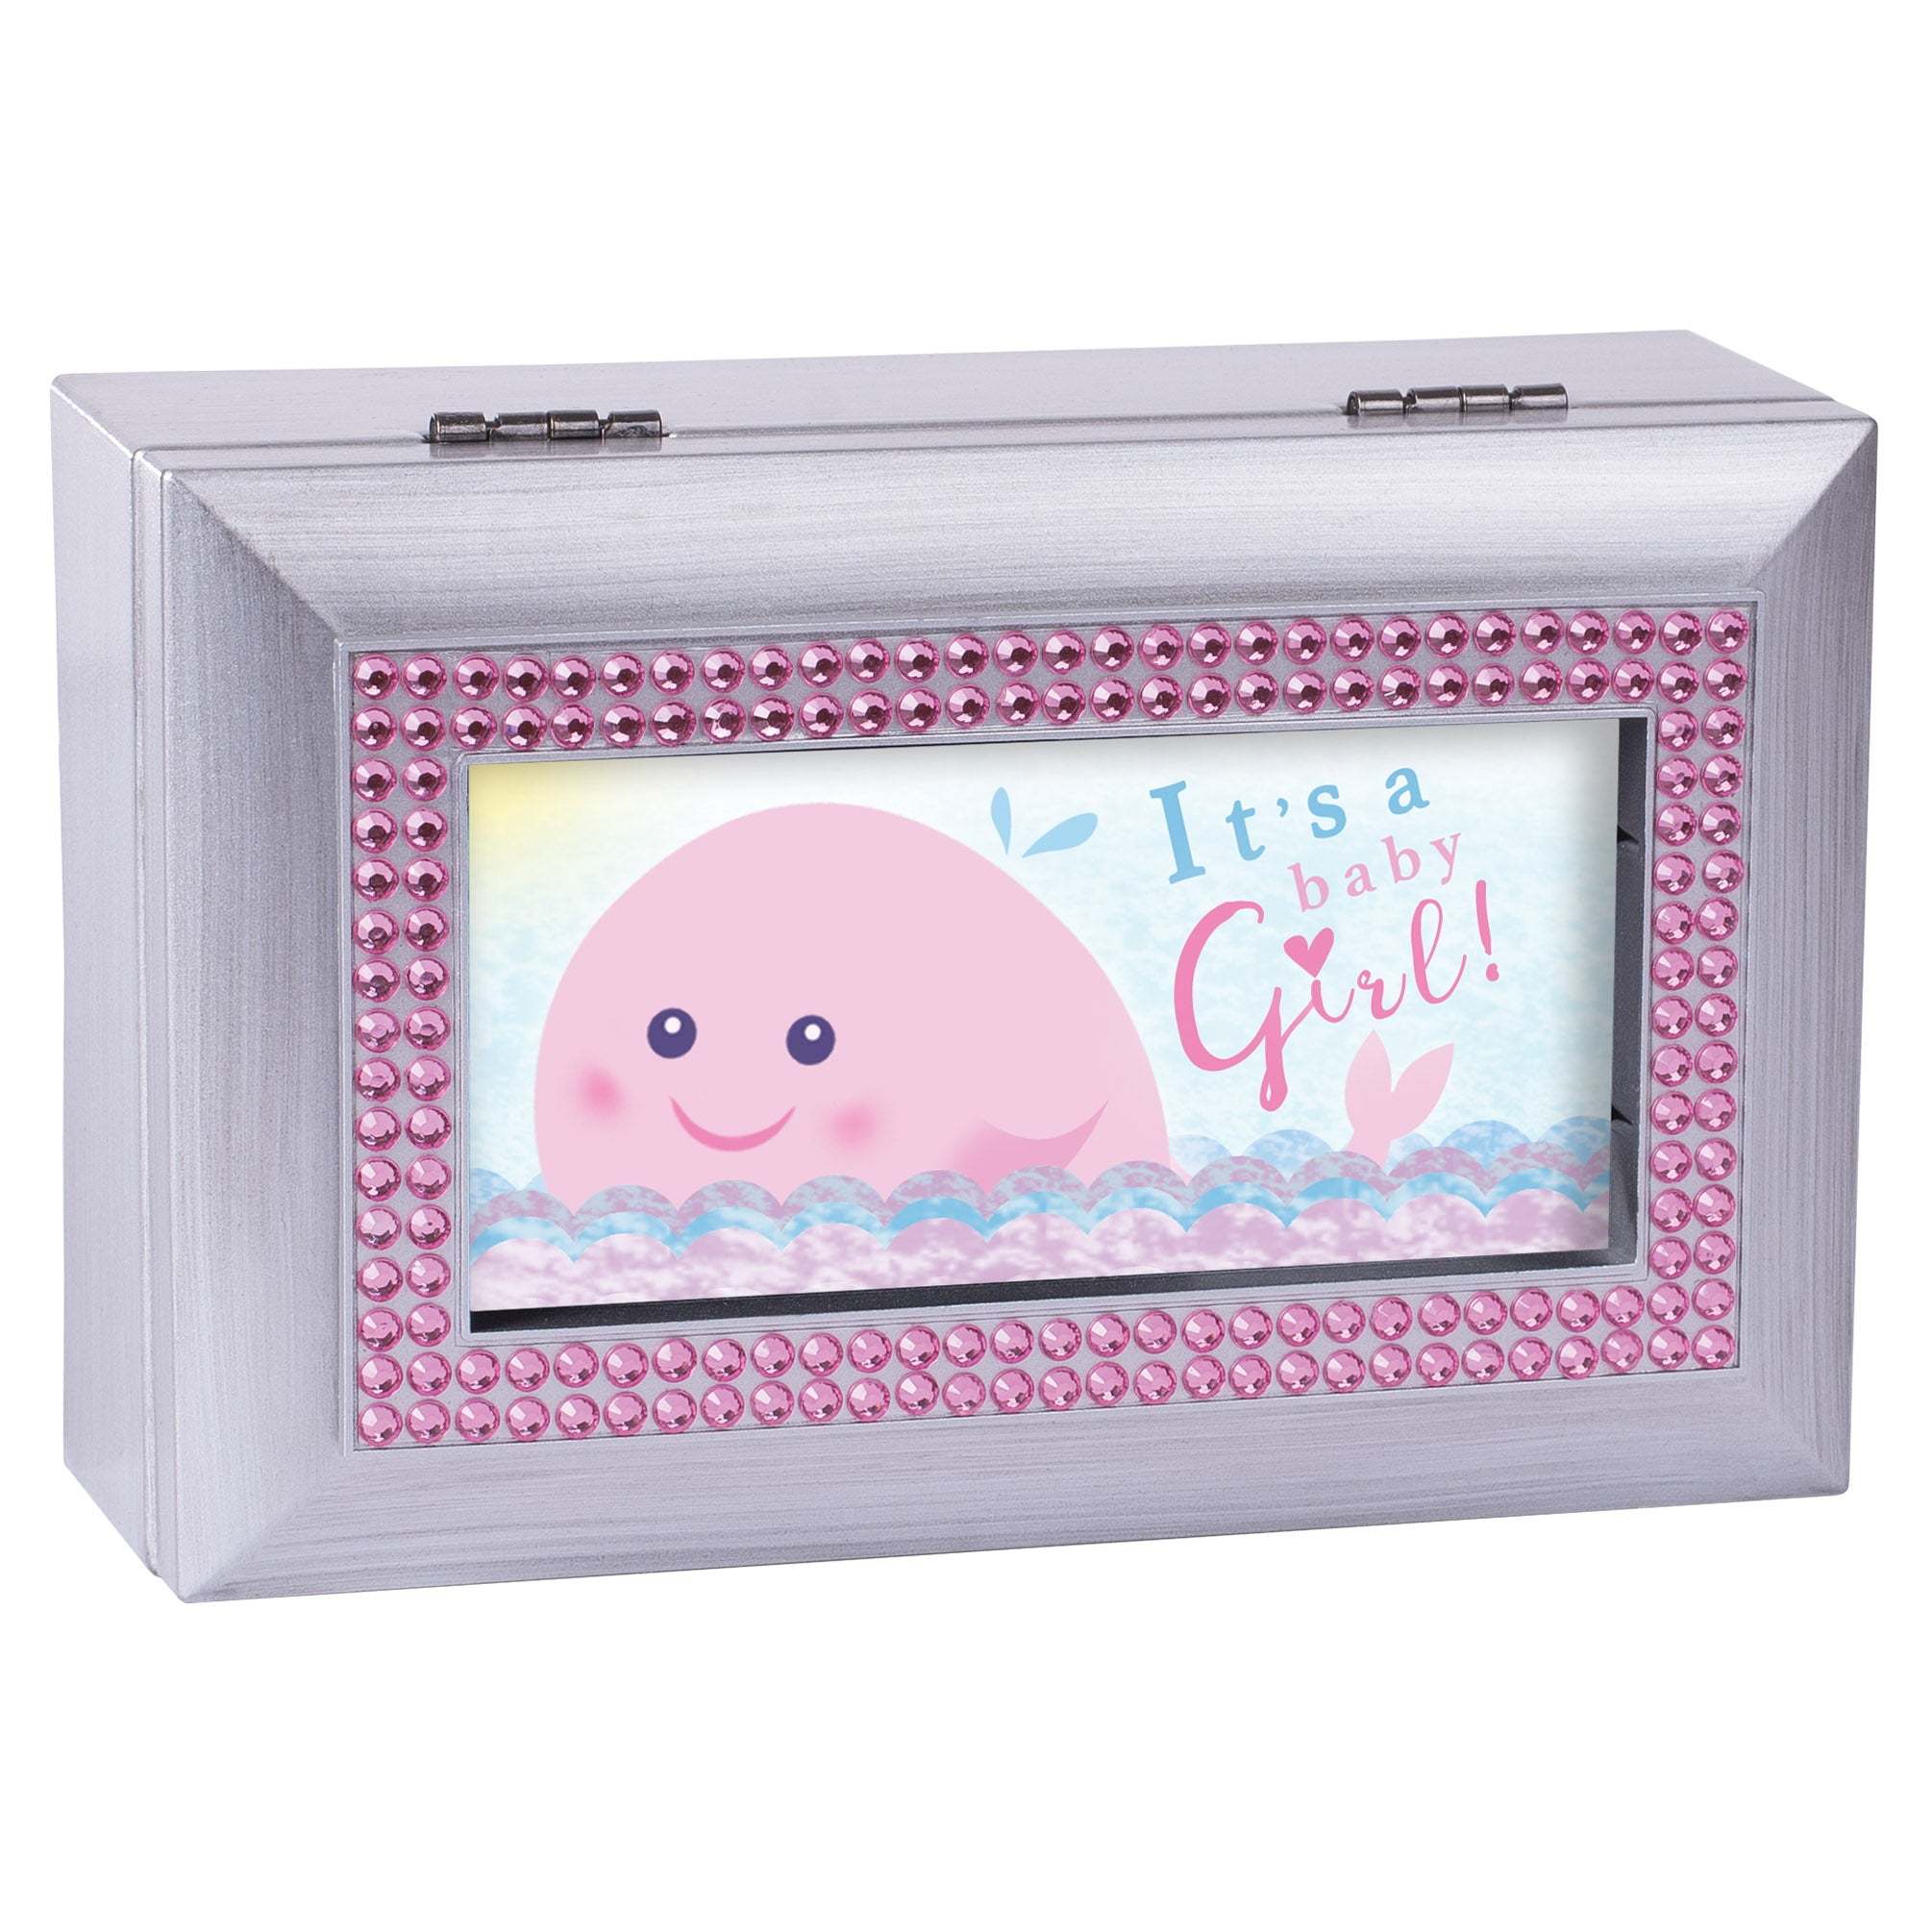 A BABY GIRL MUSIC BOX